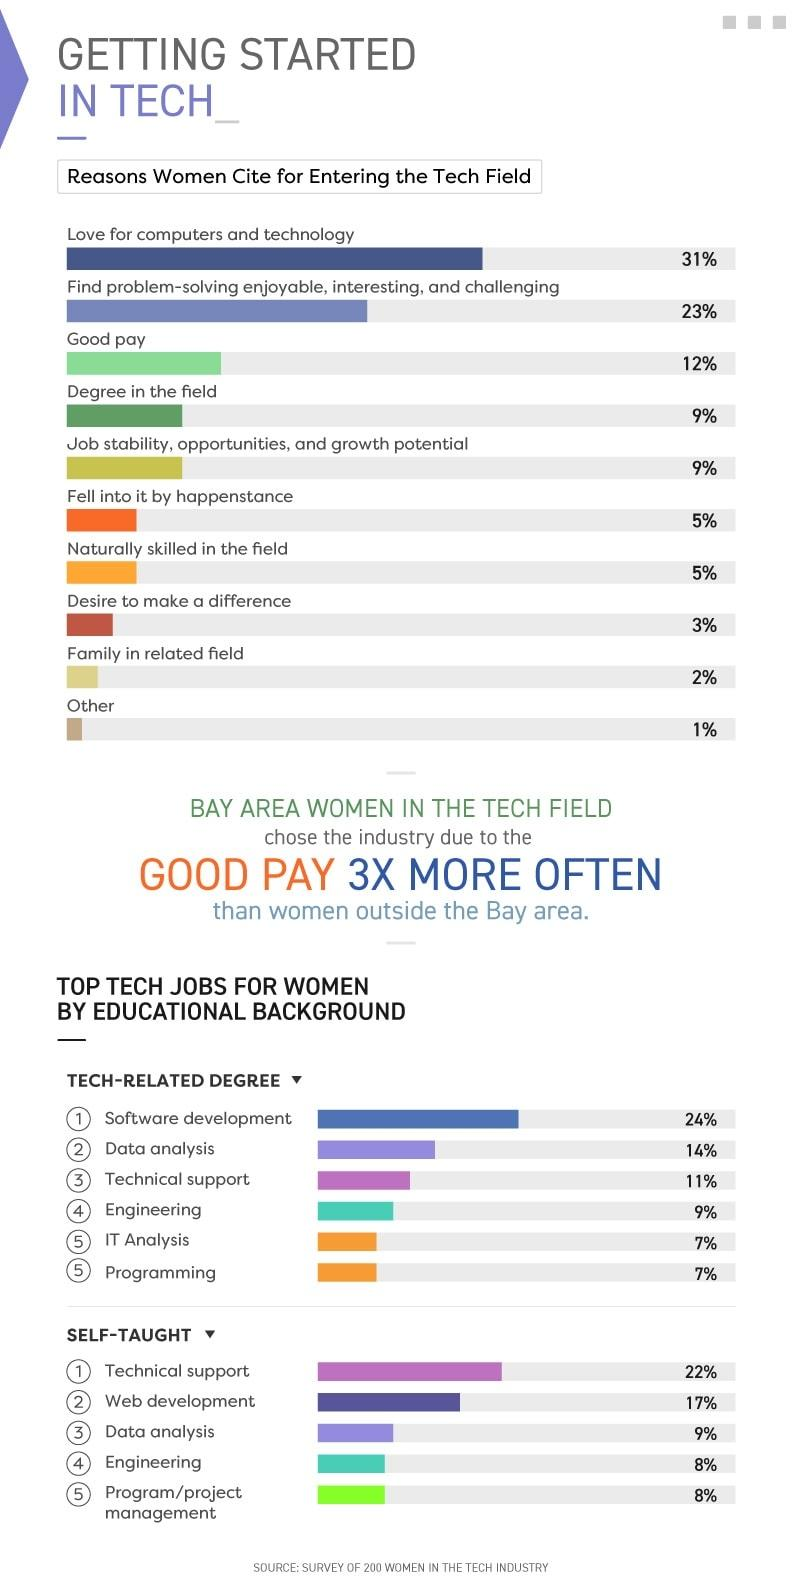 Infographic showing reasons women cite for entering the tech field